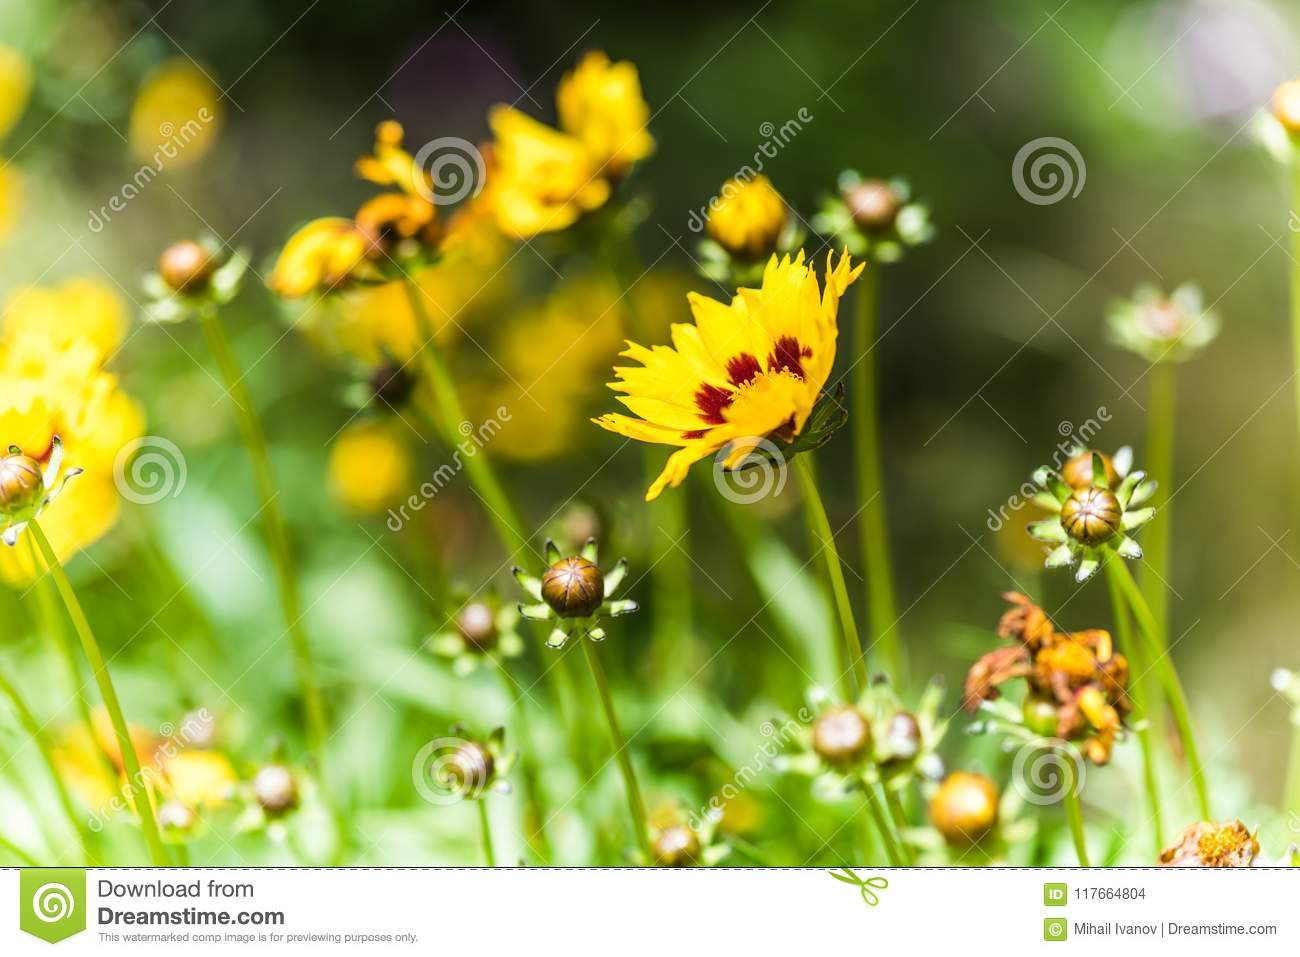 Coreopsis Hybrids Stock Photo Image Of Bright Flowers 117664804